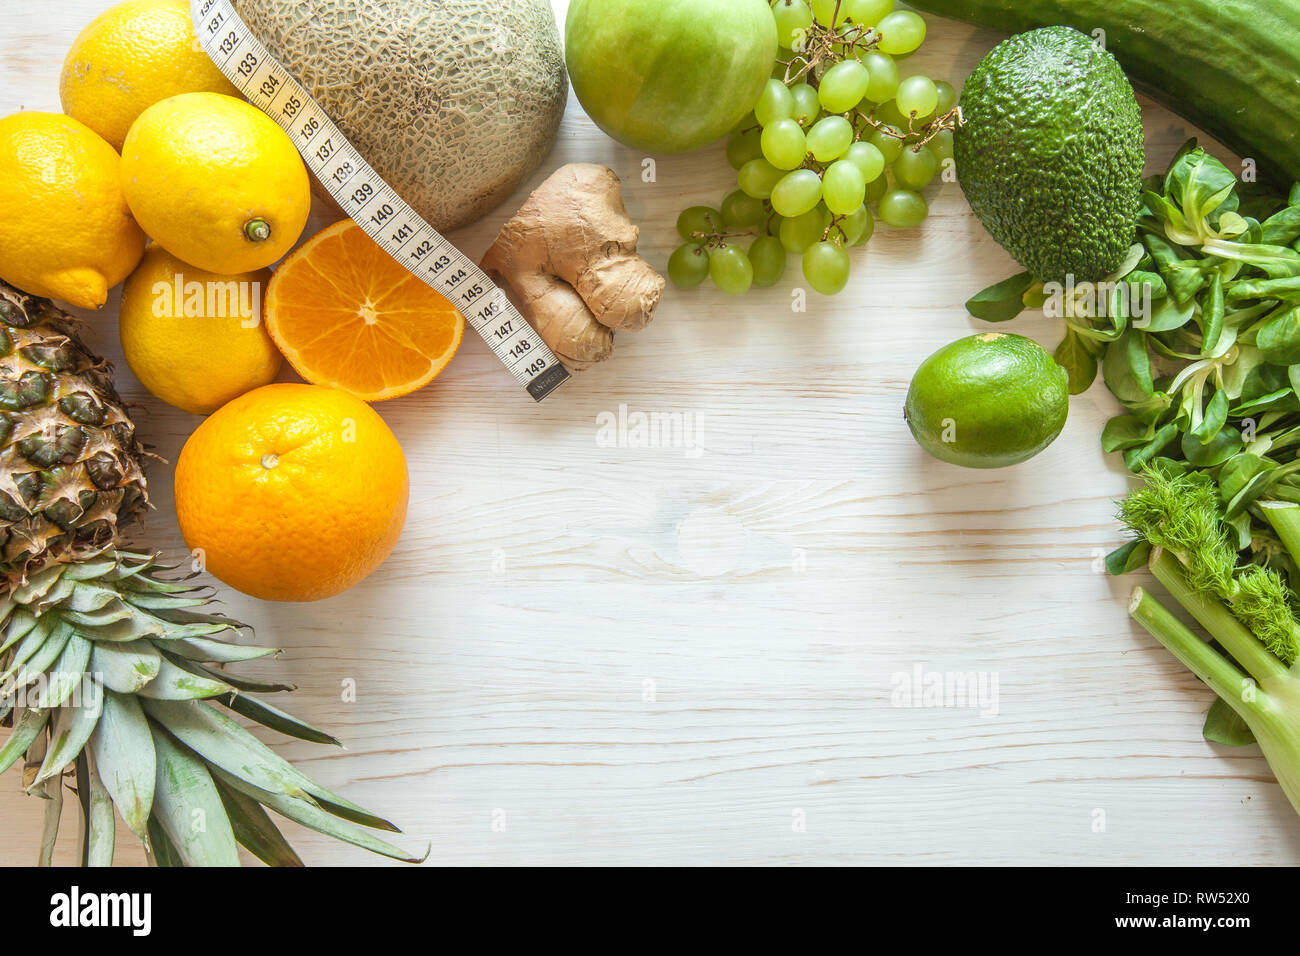 Astonishing Flat Lay Composition With Measuring Tape Healthy Vegetables Download Free Architecture Designs Scobabritishbridgeorg